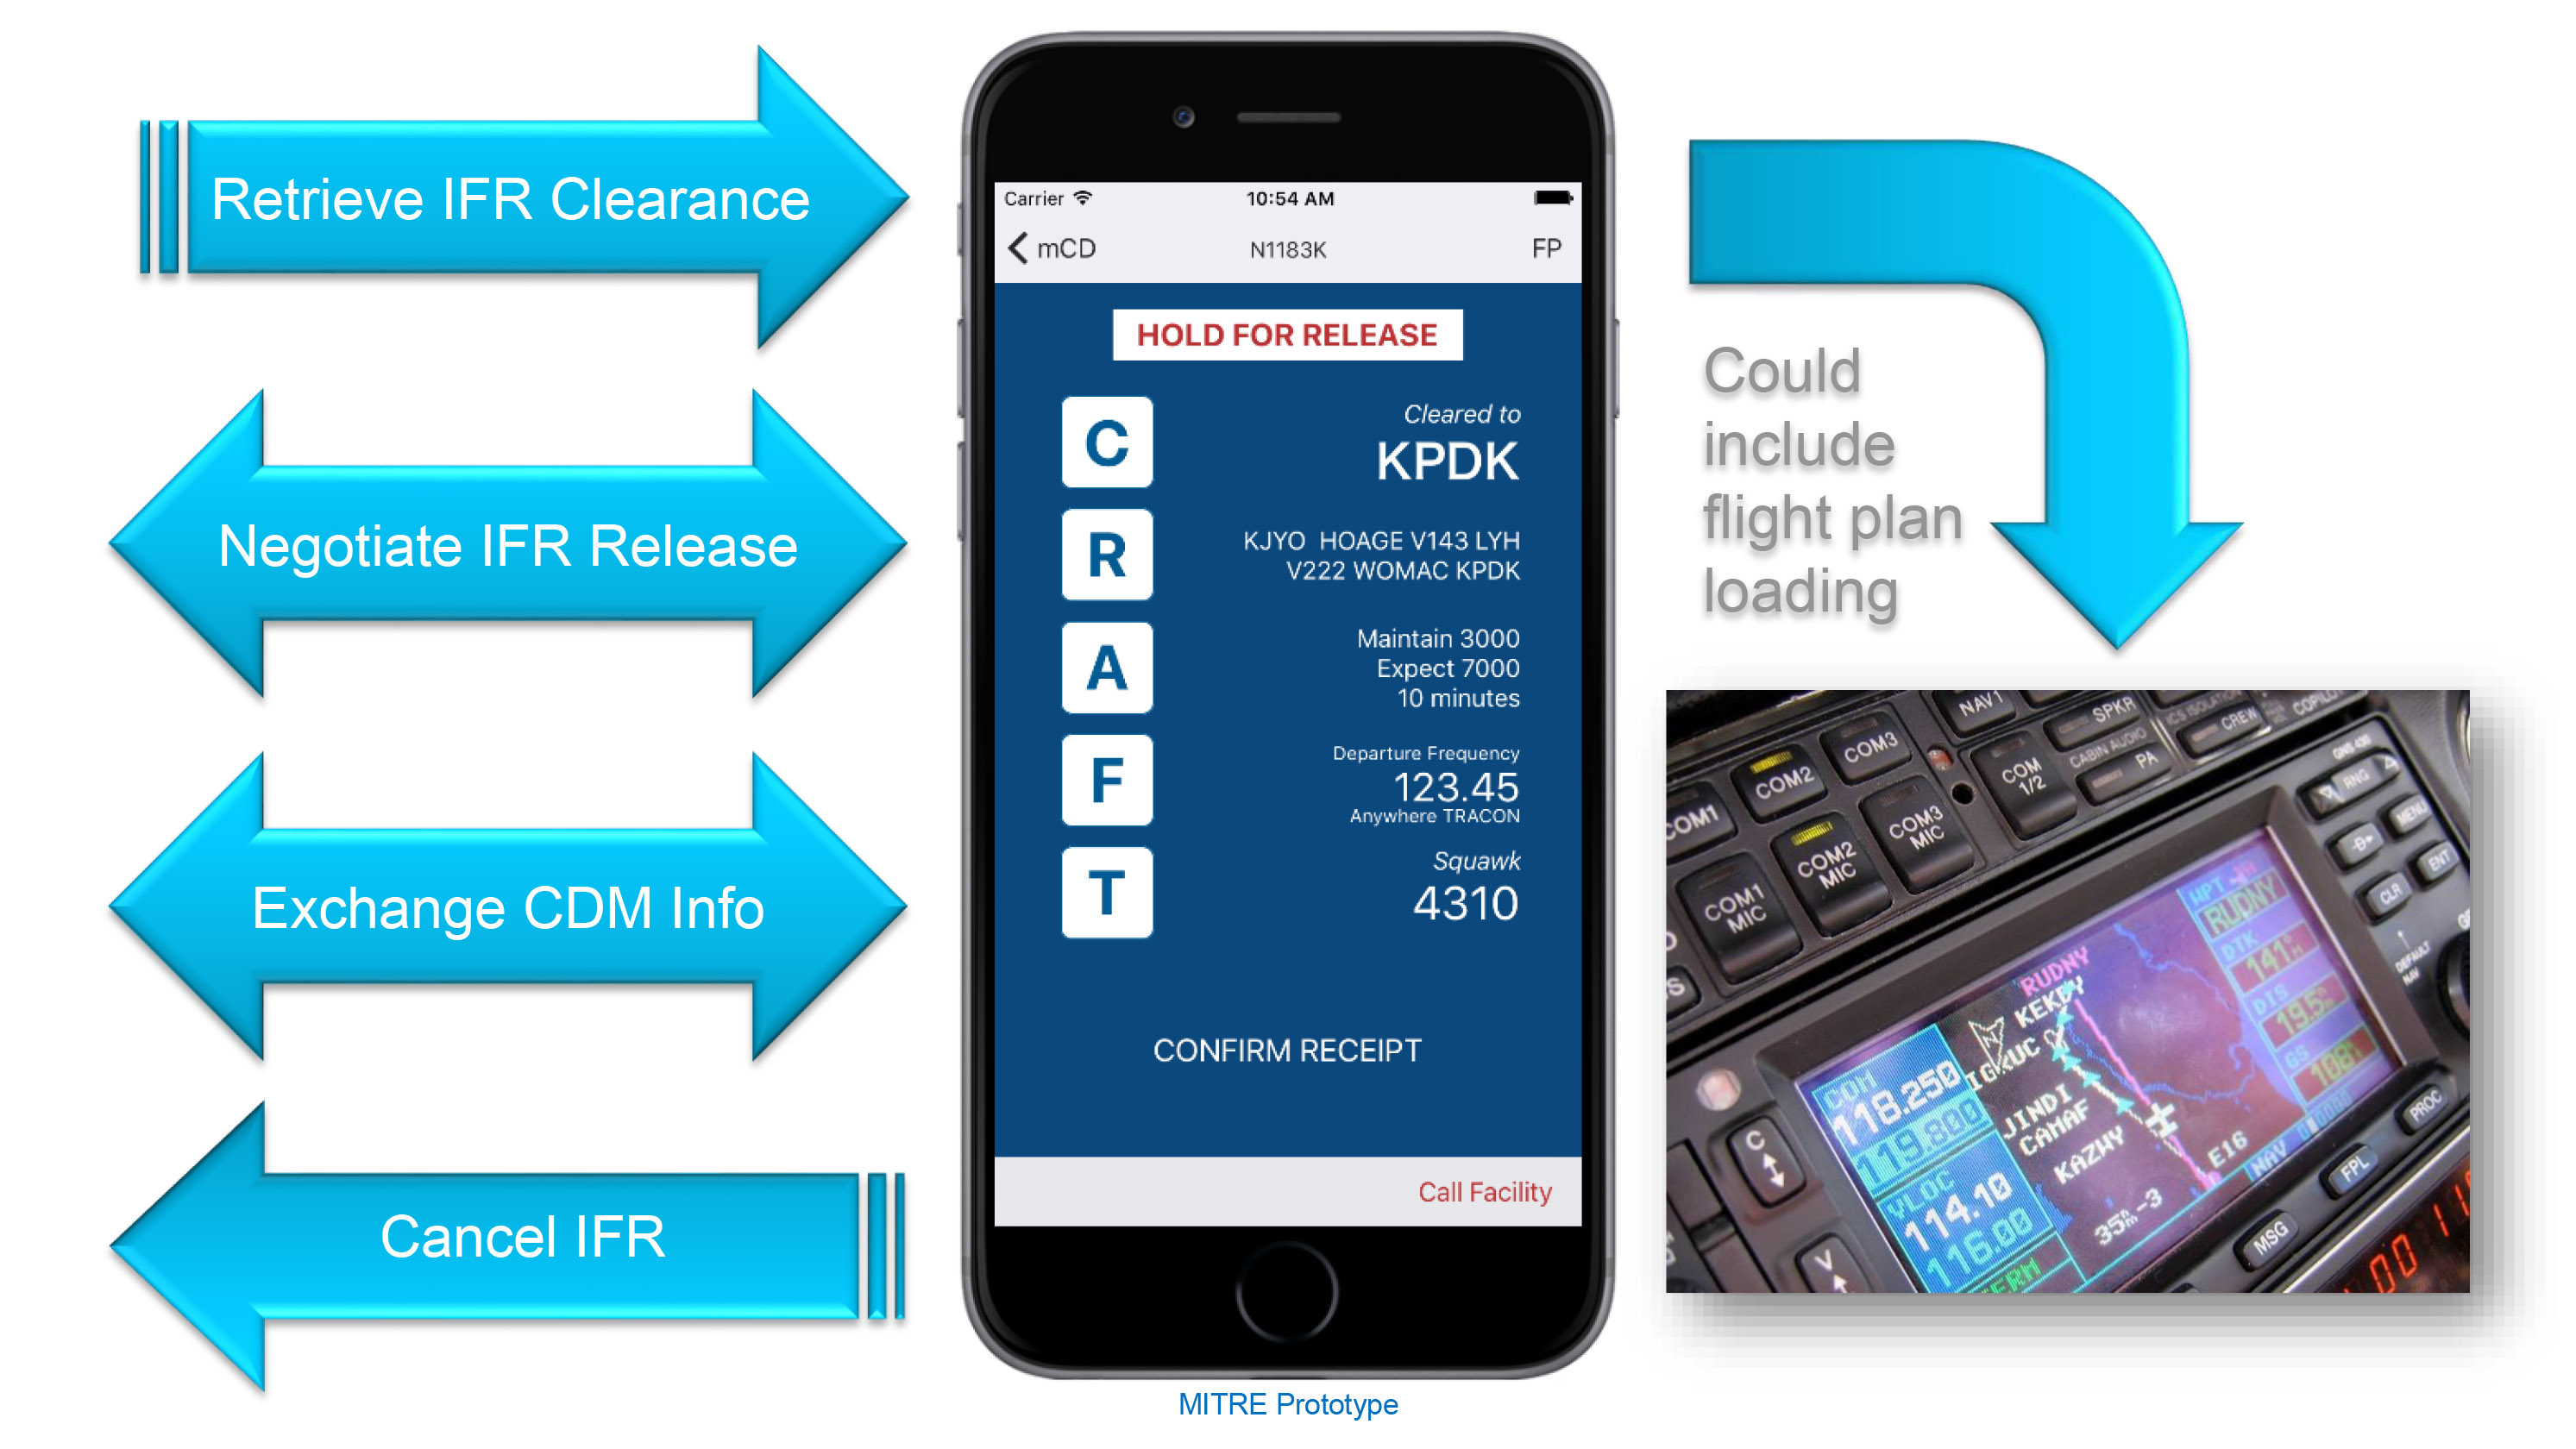 MITRE Corporation is developing a mobile IFR clearance delivery app that will allow pilots to receive IFR clearances using mobile devices. Image courtesy of The MITRE Corporation.